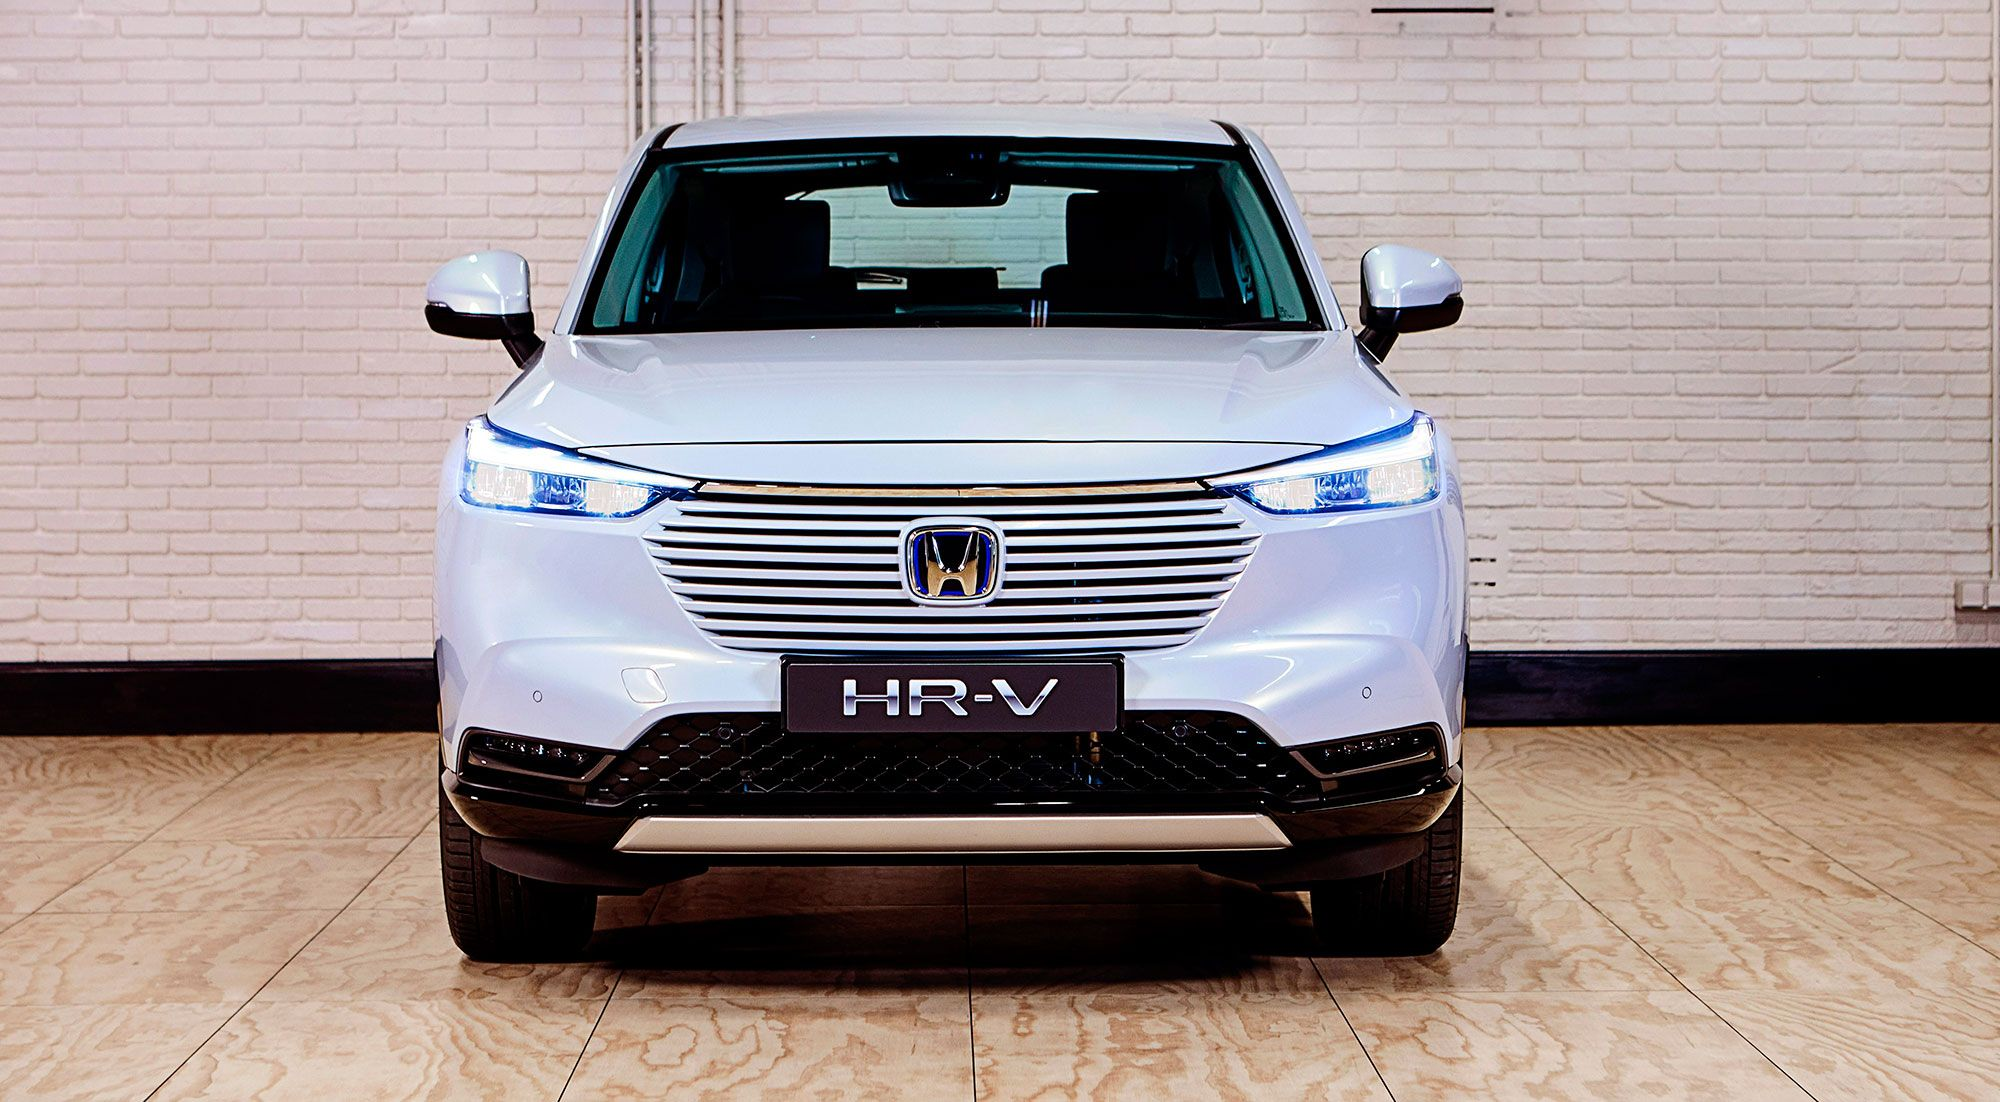 The third-generation Honda HR-V will be available exclusively as a hybrid car in Europe and take advantage of a fuel-efficient powertrain called the e:HEV.